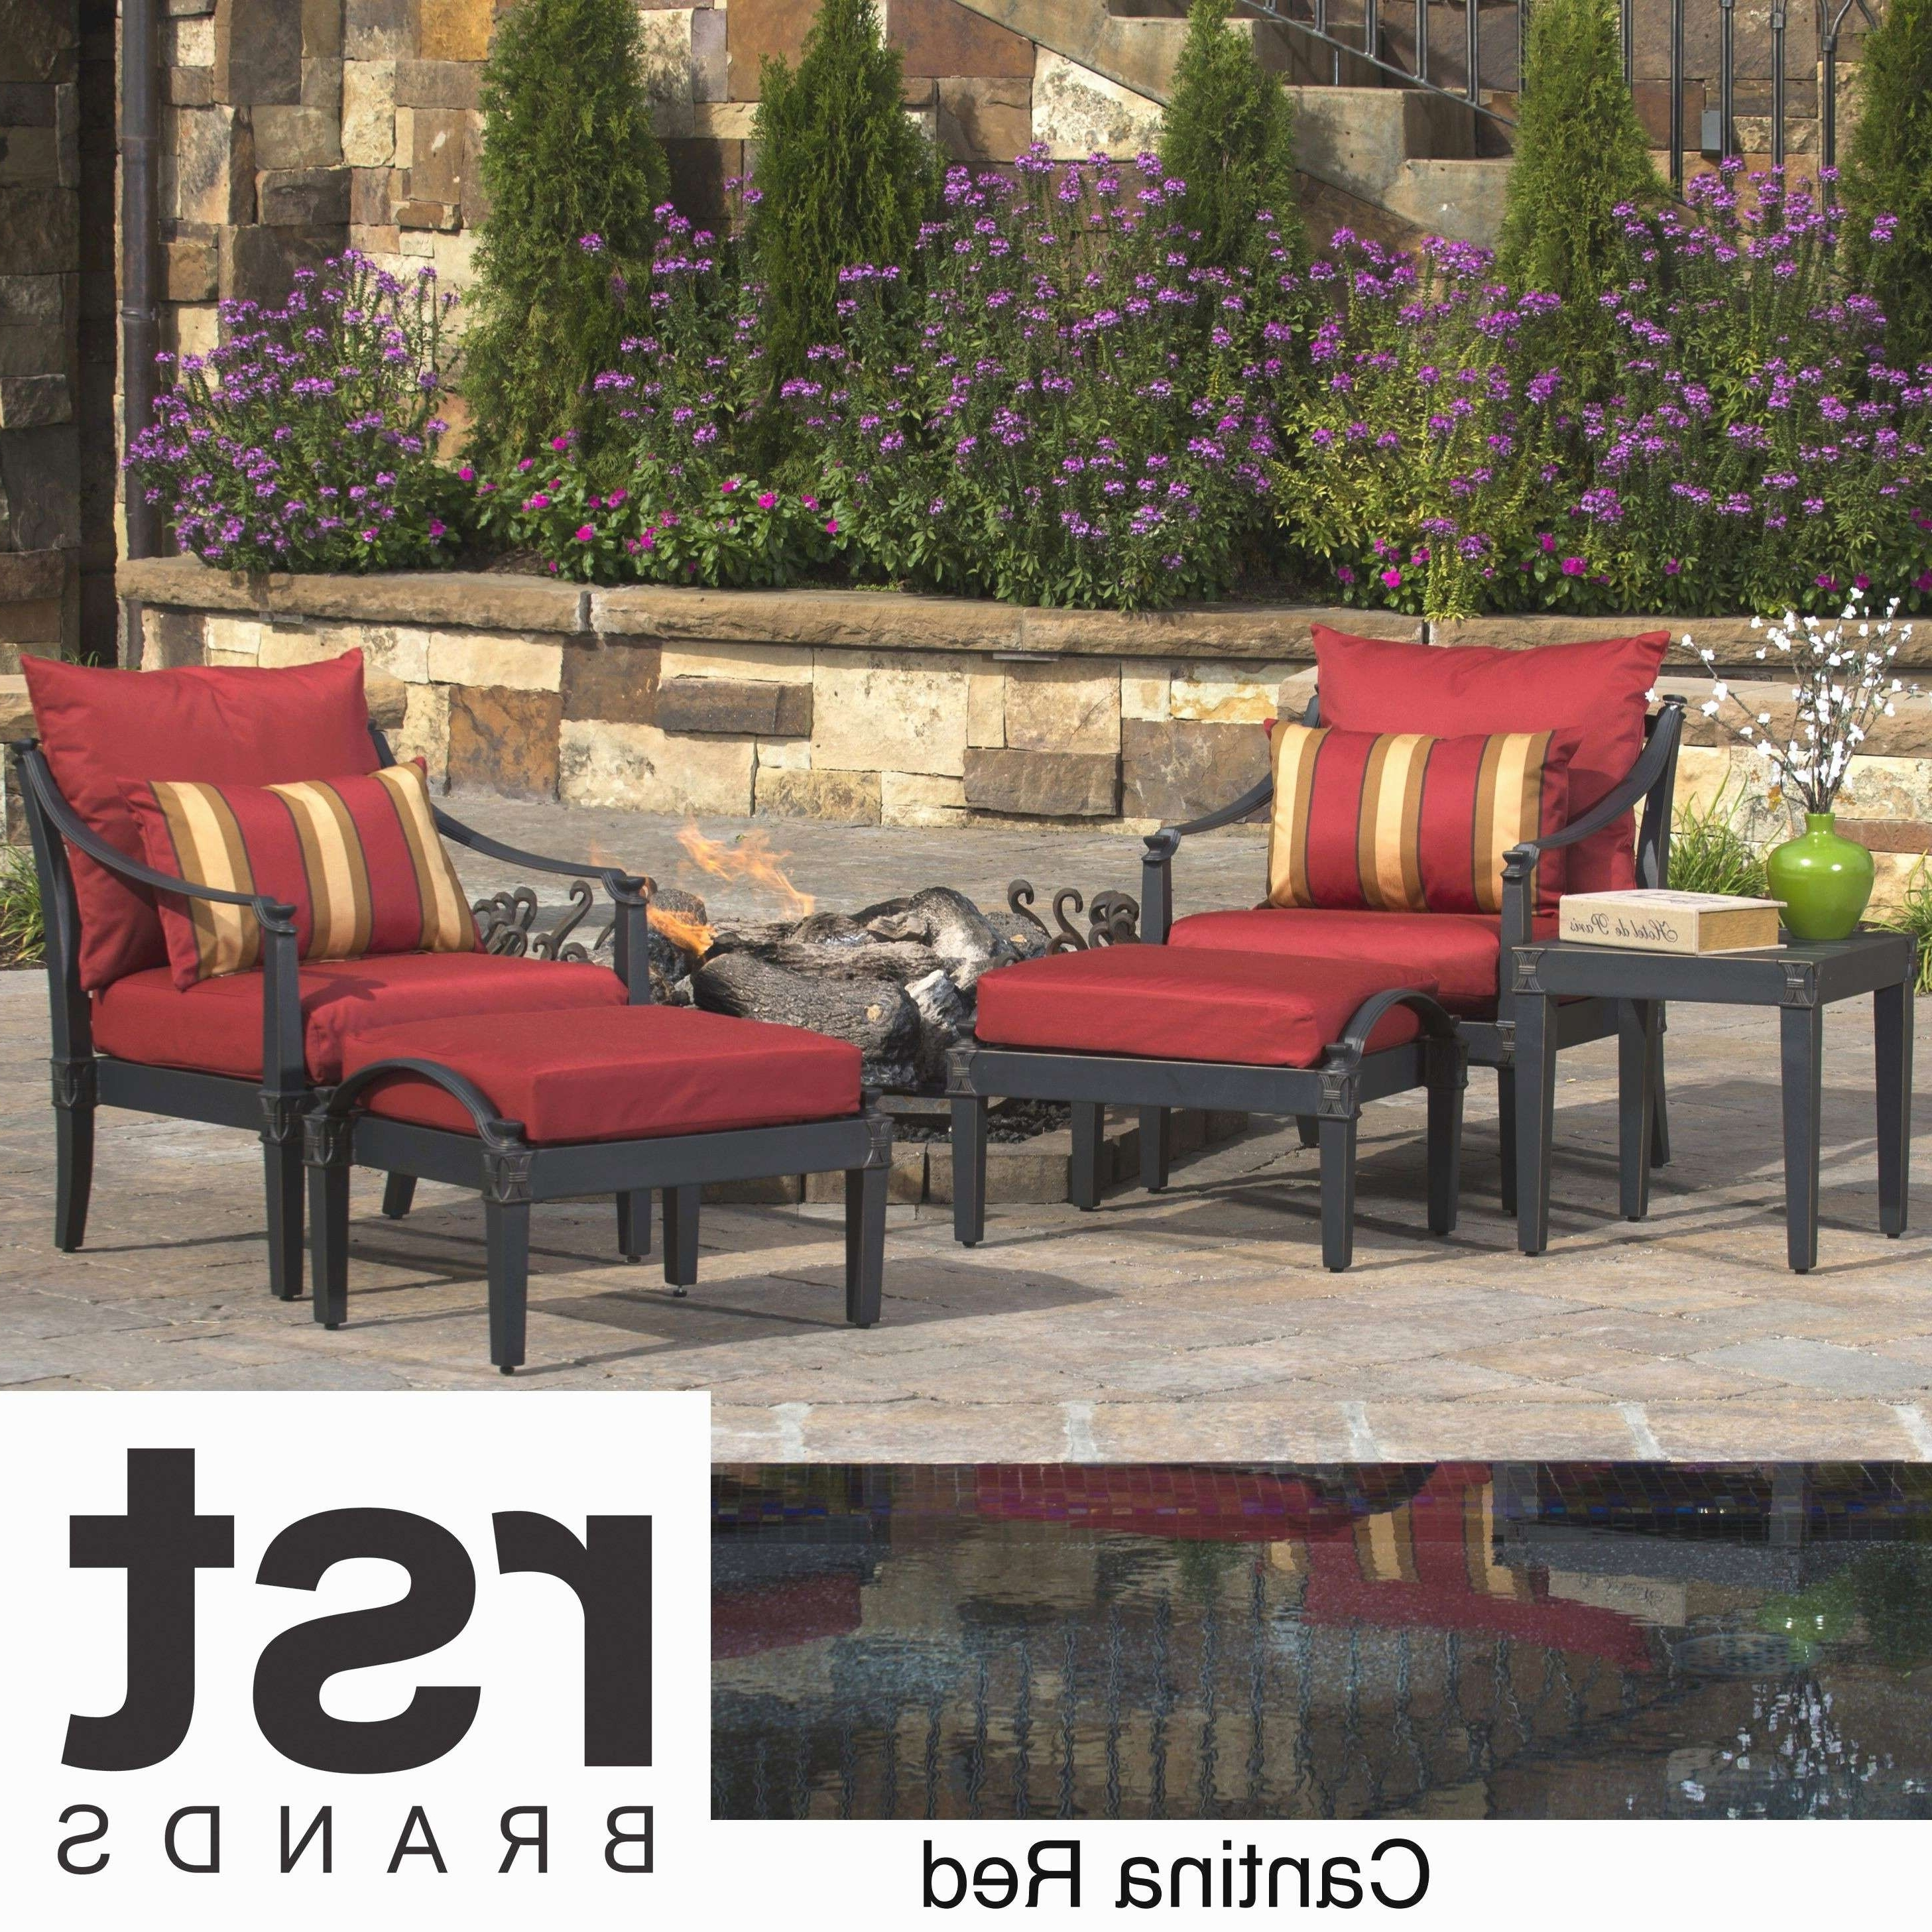 Patio Conversation Sets At Sam's Club Within Fashionable 8 Sam S Club Outdoor Patio Furniture Awesome Design Ideas Of Sam's (View 14 of 20)